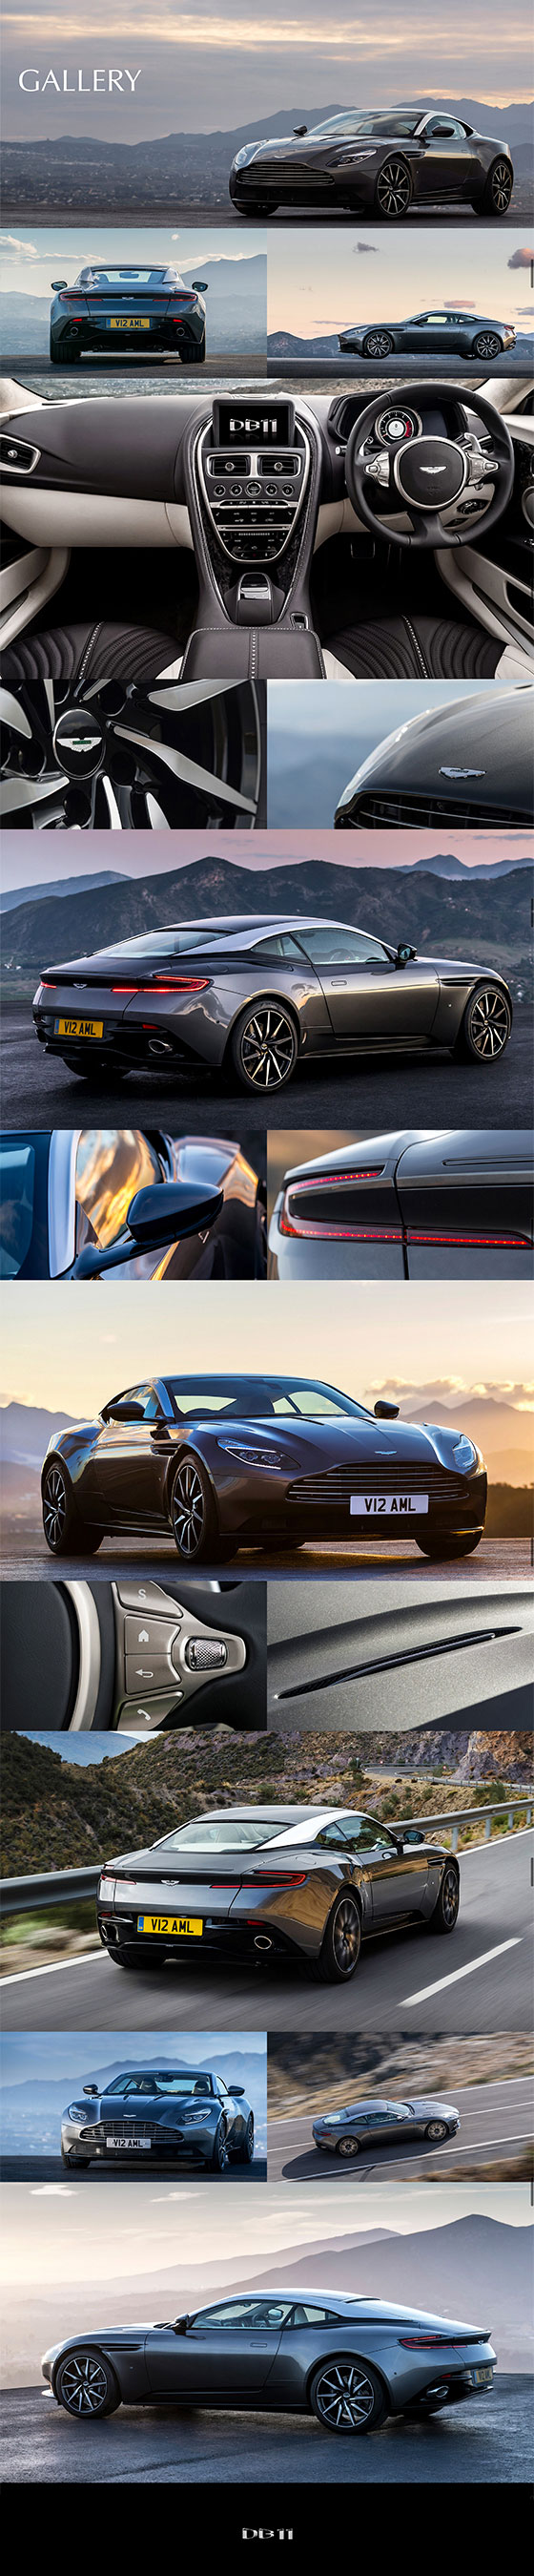 Aston Martin DB11 Gallery